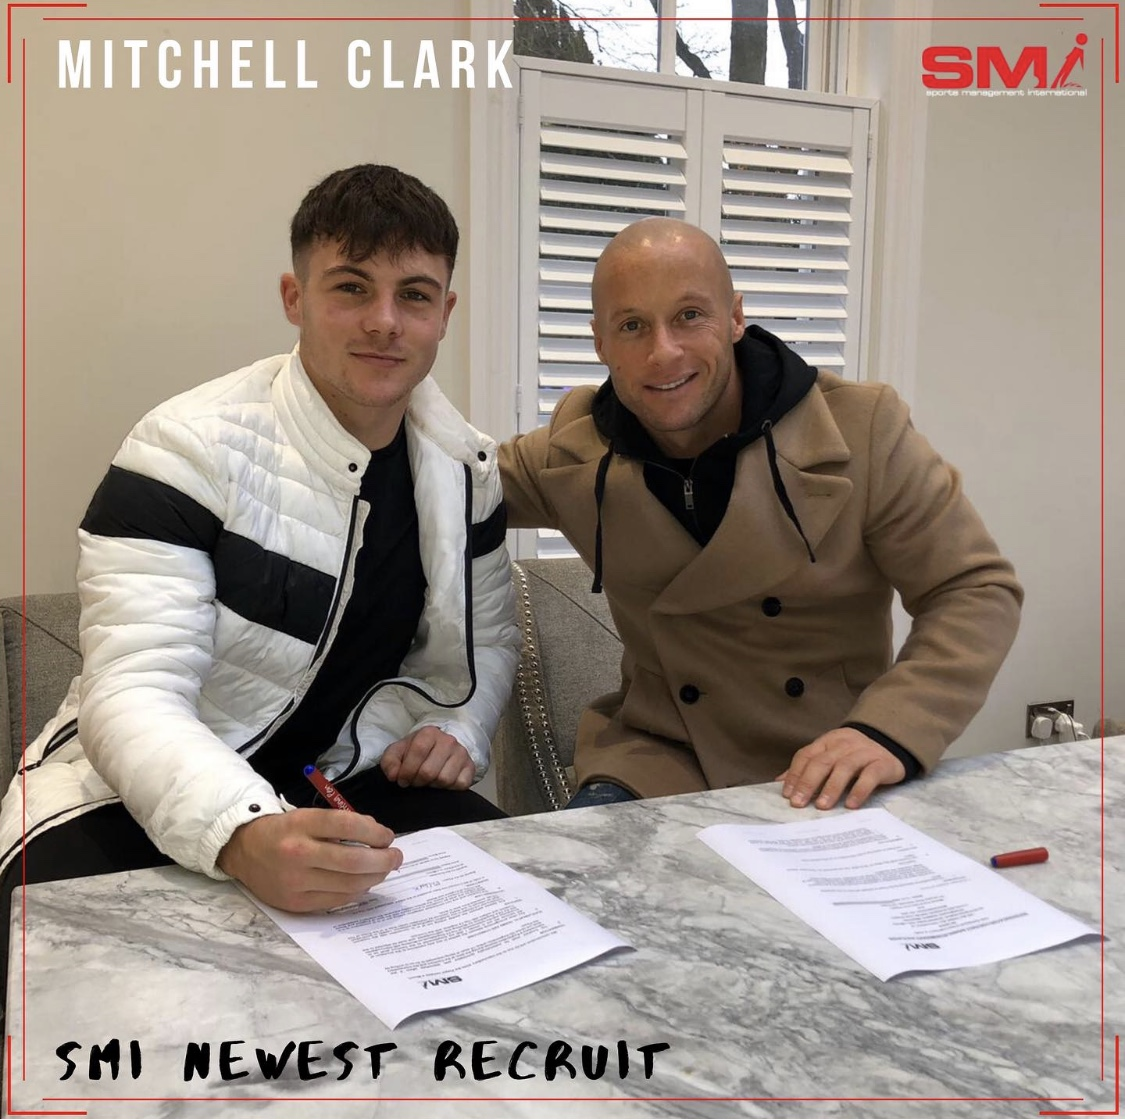 SMI new recruit Mitchell Clark